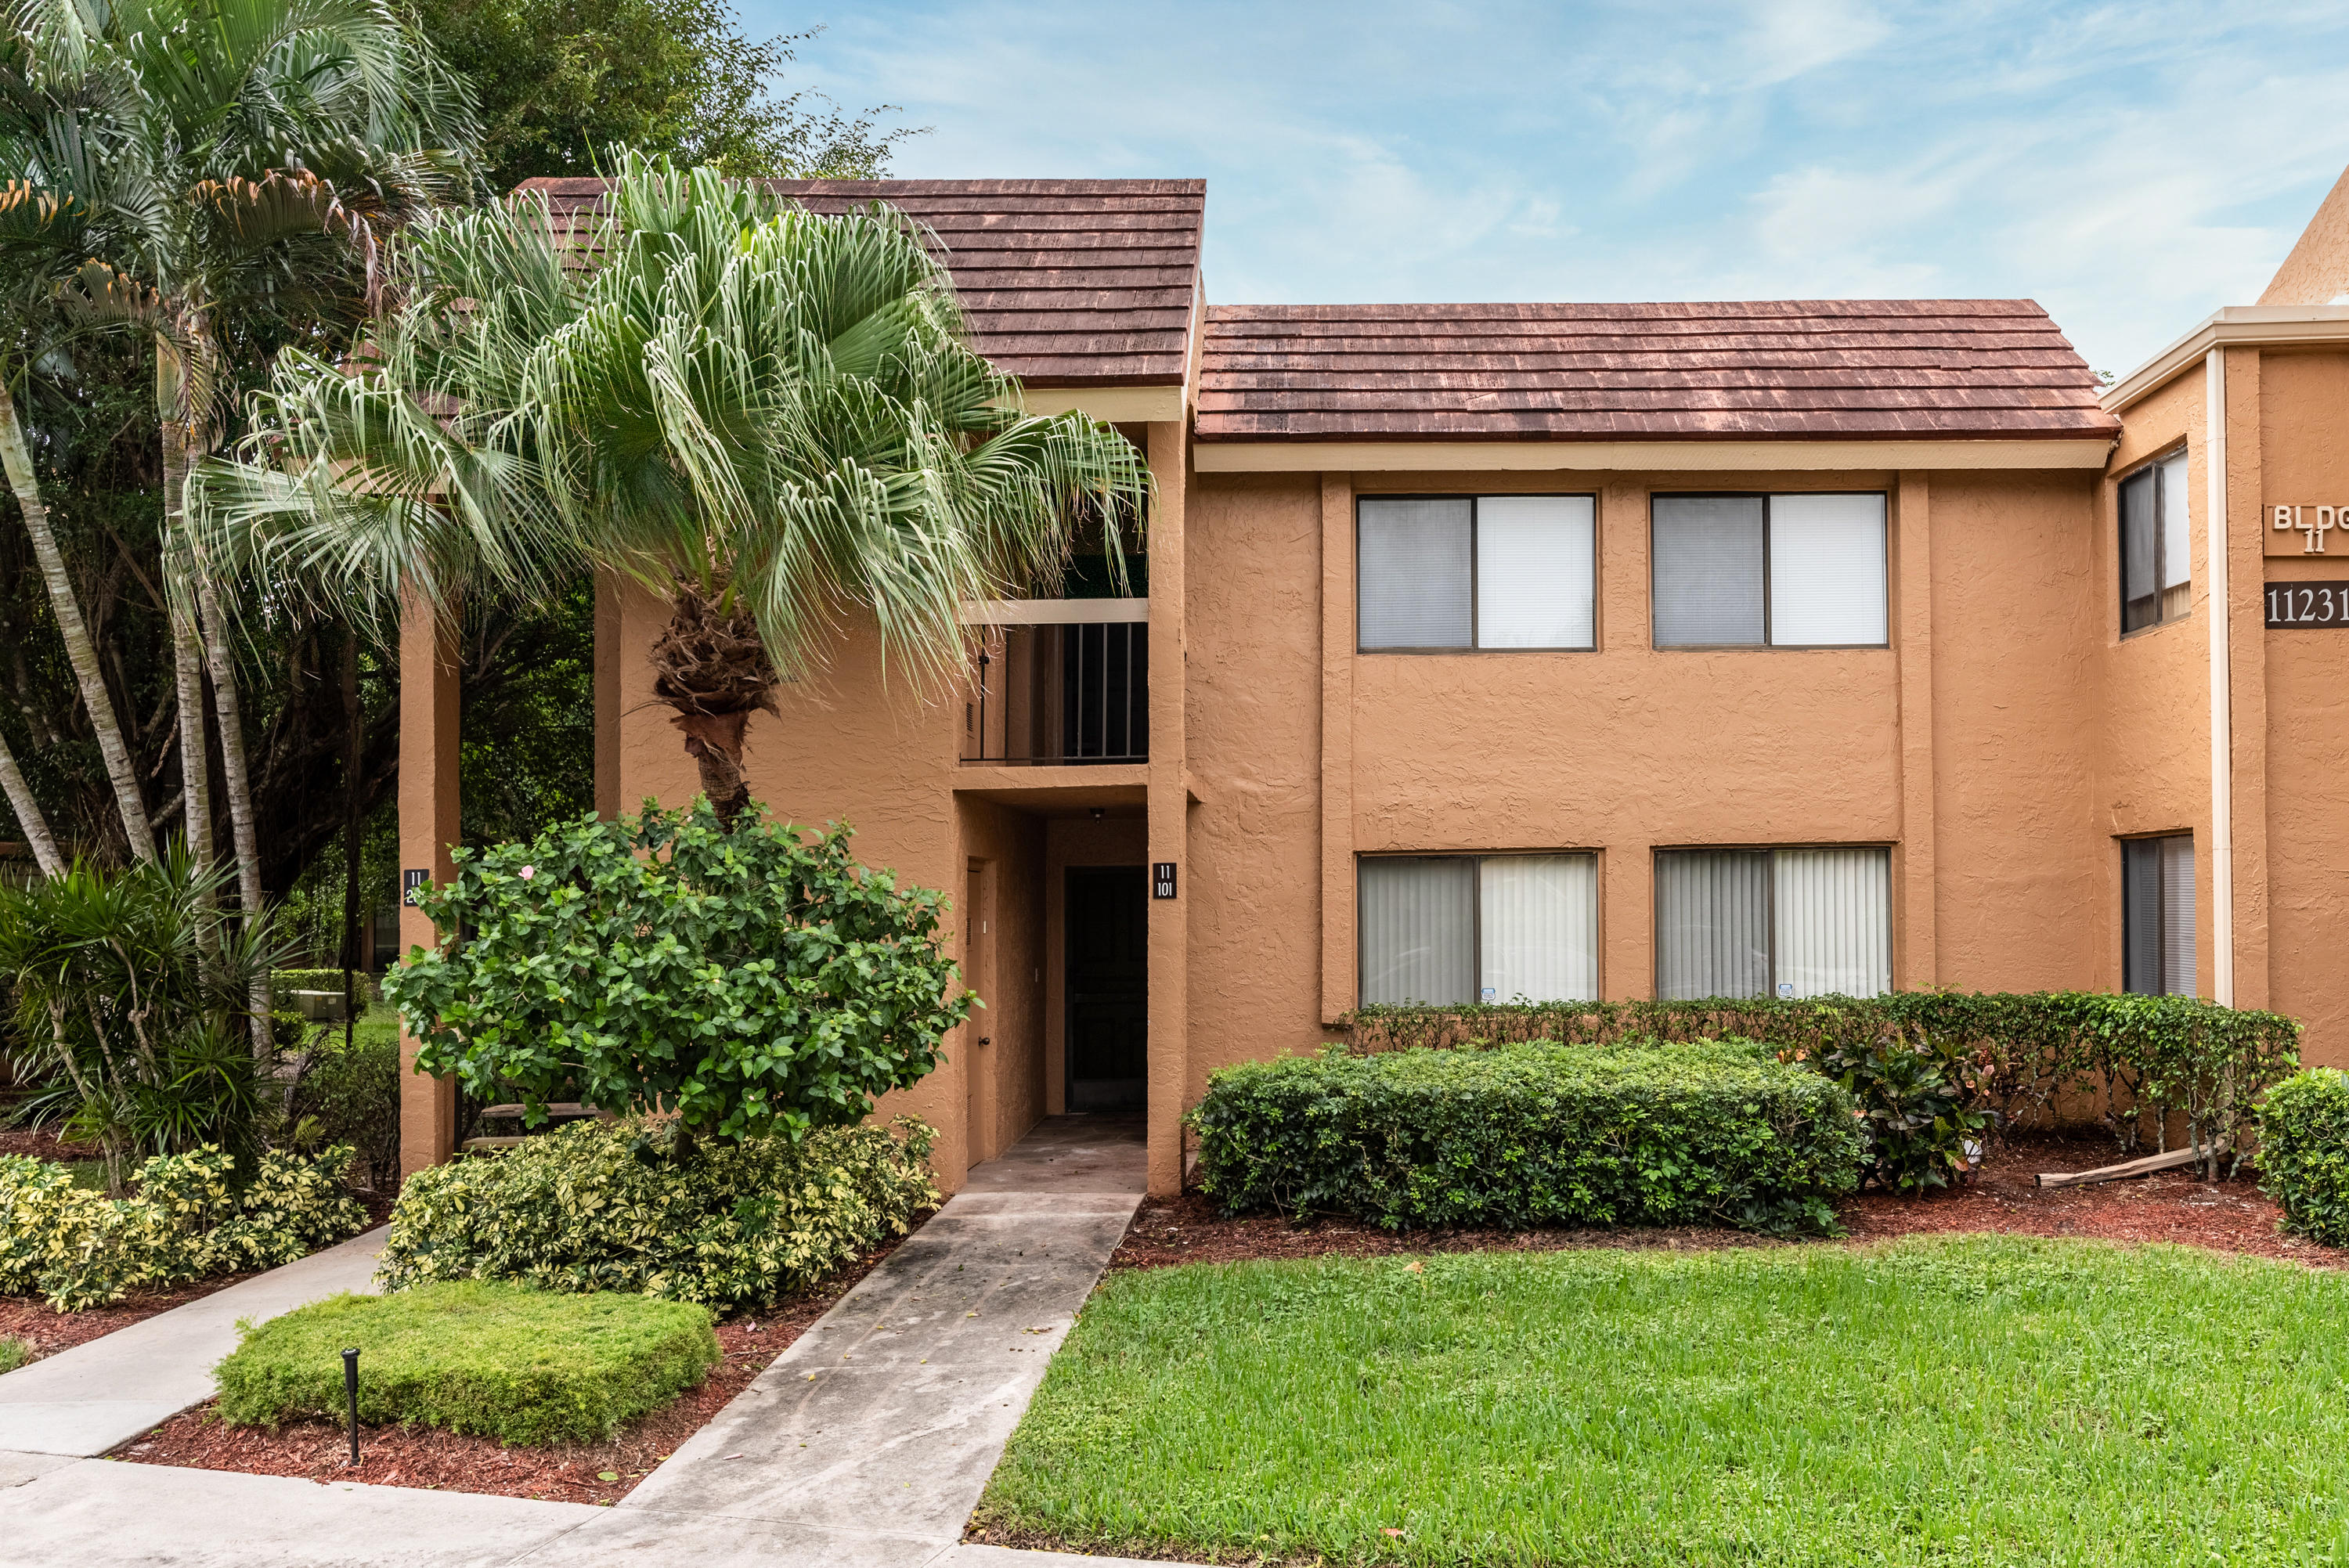 Home for sale in Green Lakes Condo Boynton Beach Florida